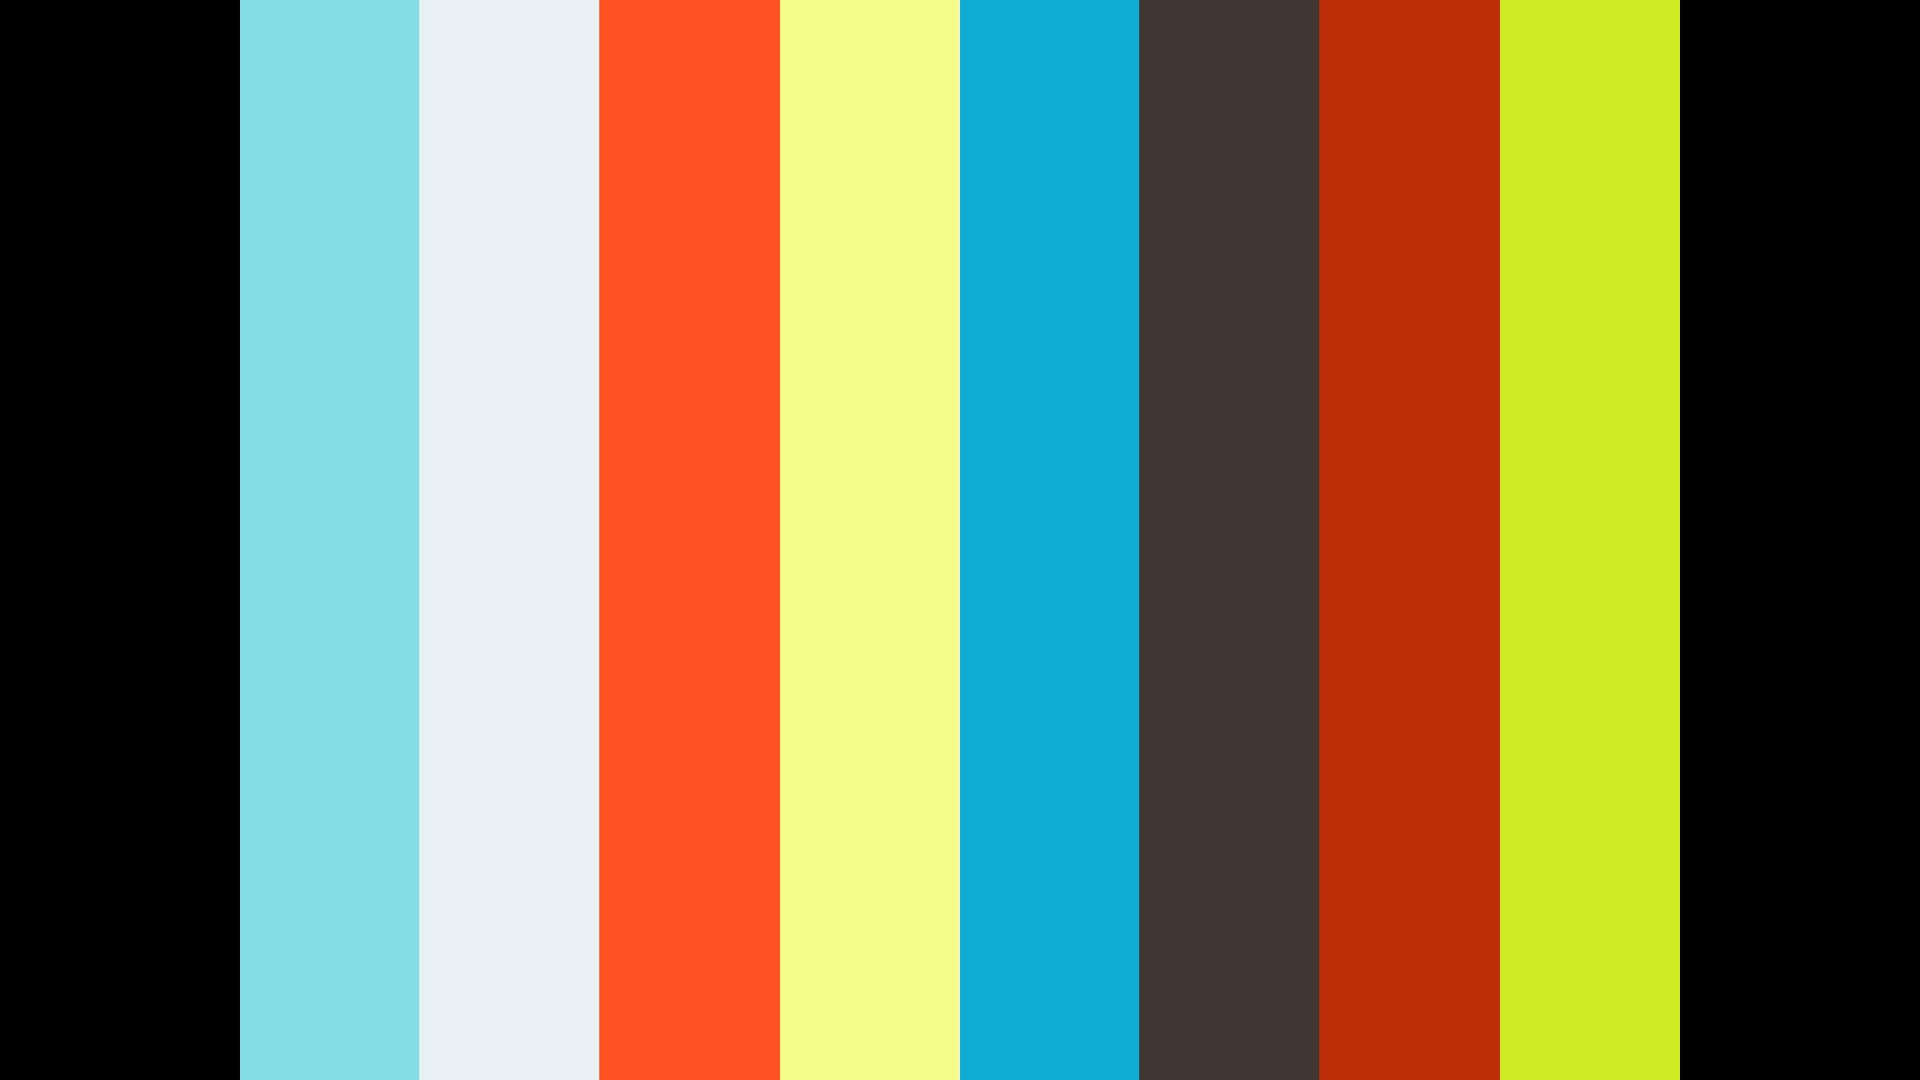 Mesut Özil BigShoe 2014 Brazil - 11 children got life changing surgeries